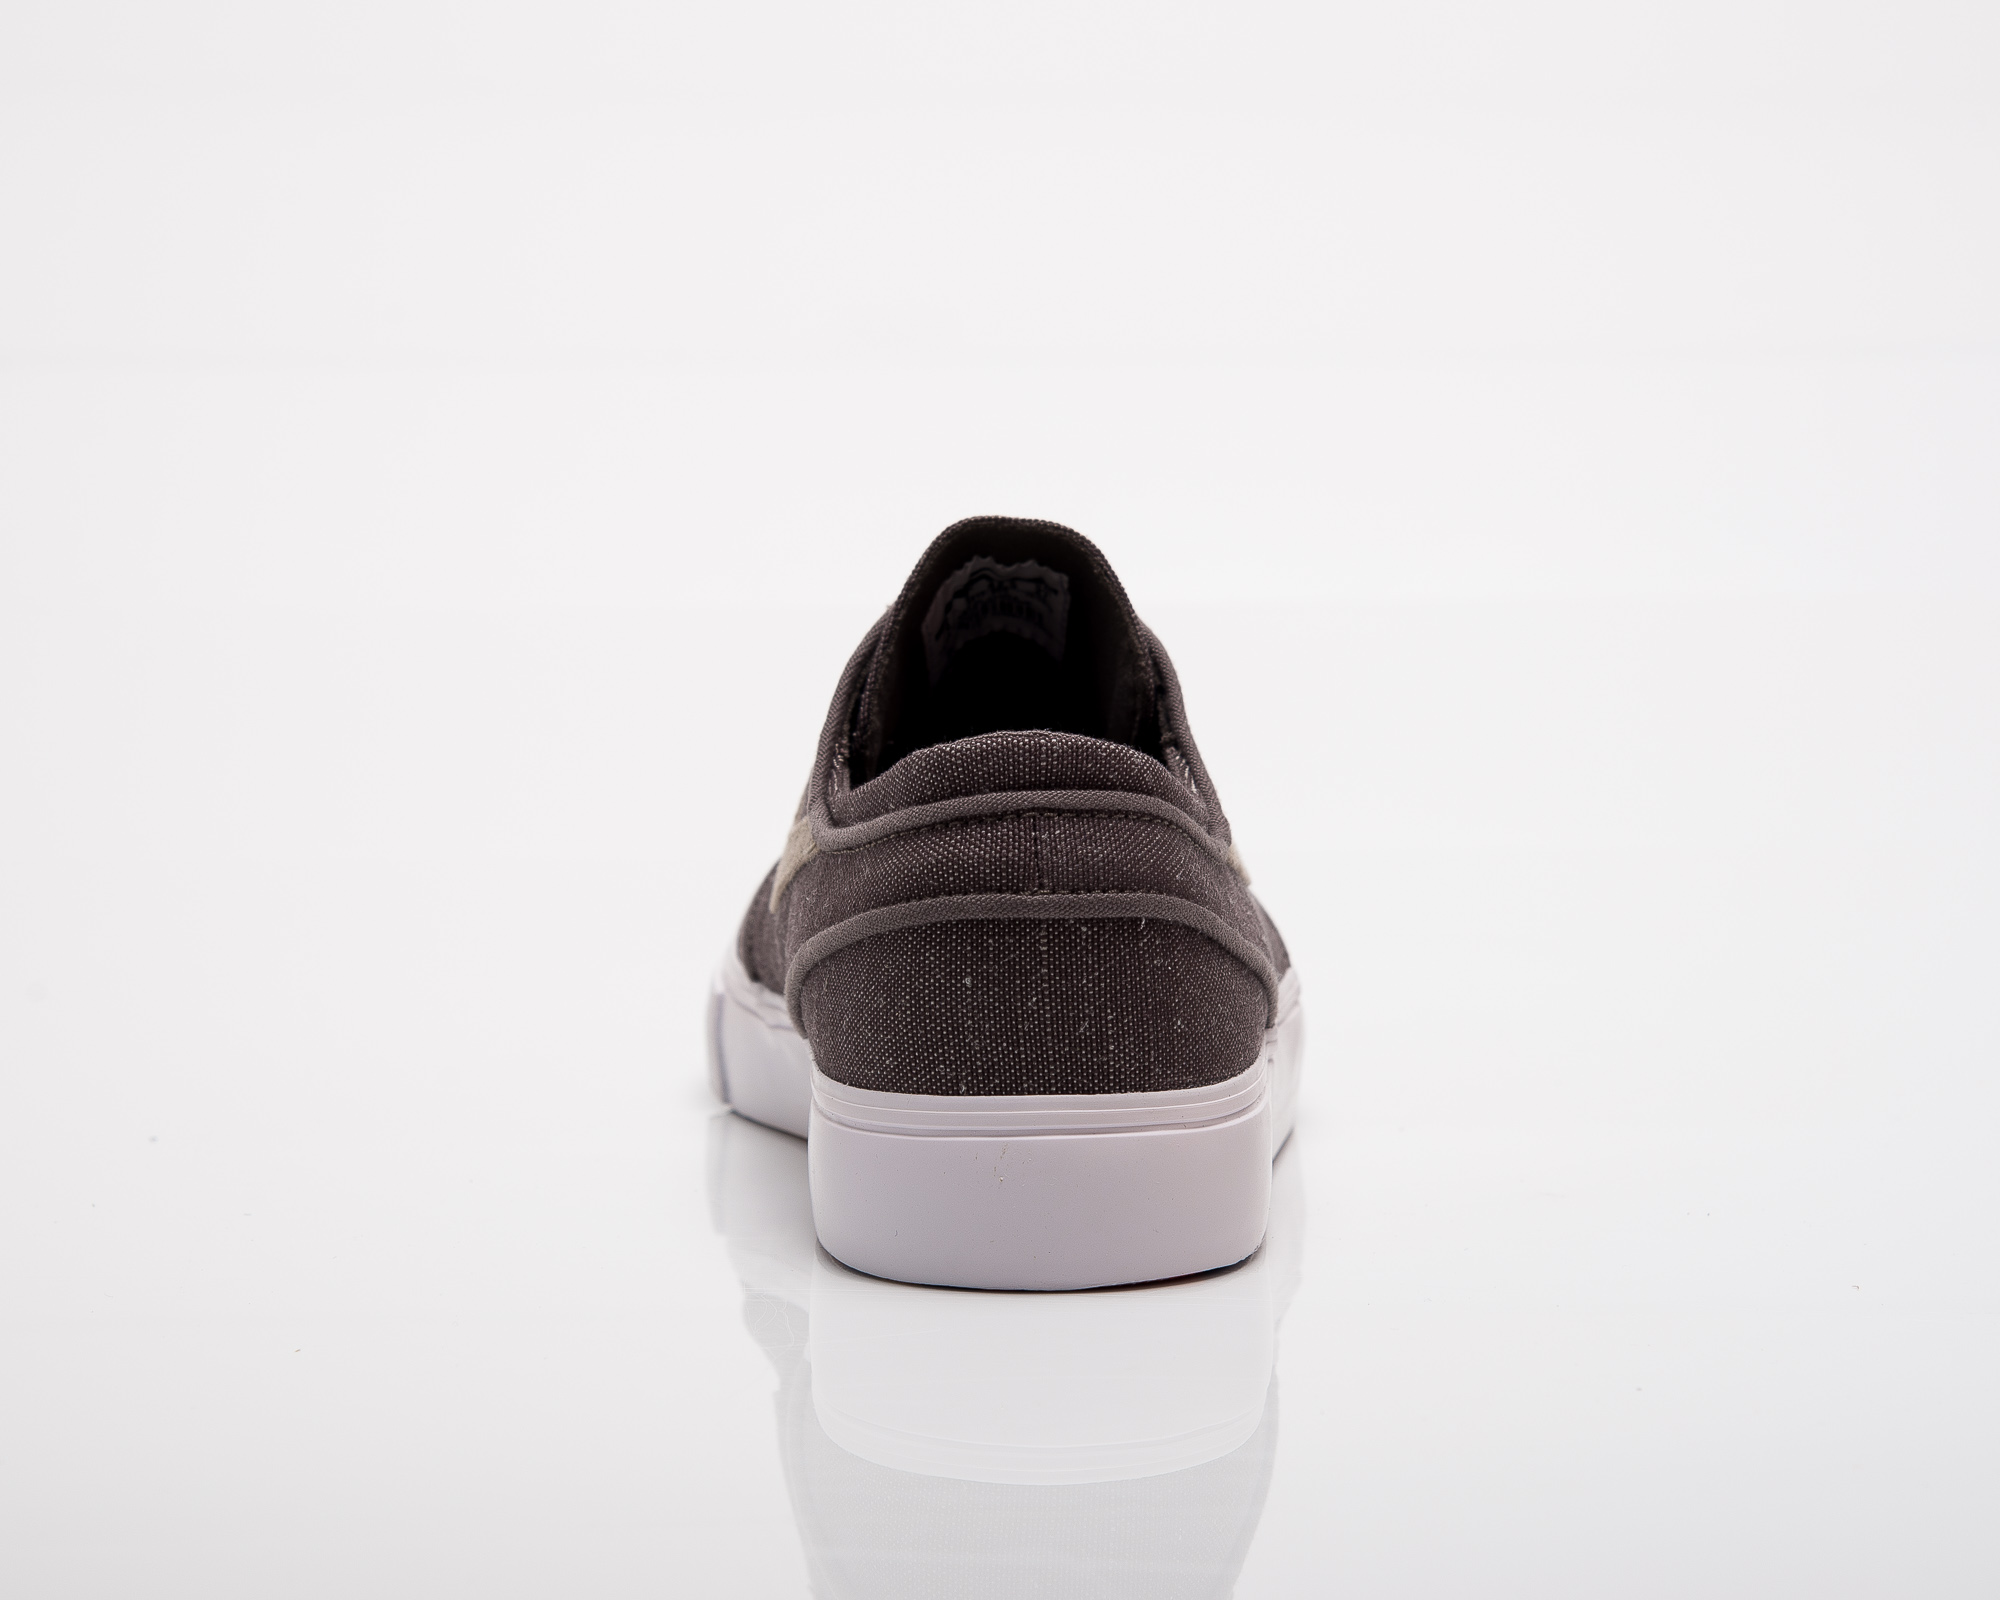 reputable site fd5f9 6a07b Nike SB Zoom Stefan Janoski Canvas Deconstructed - Shoes Casual ...